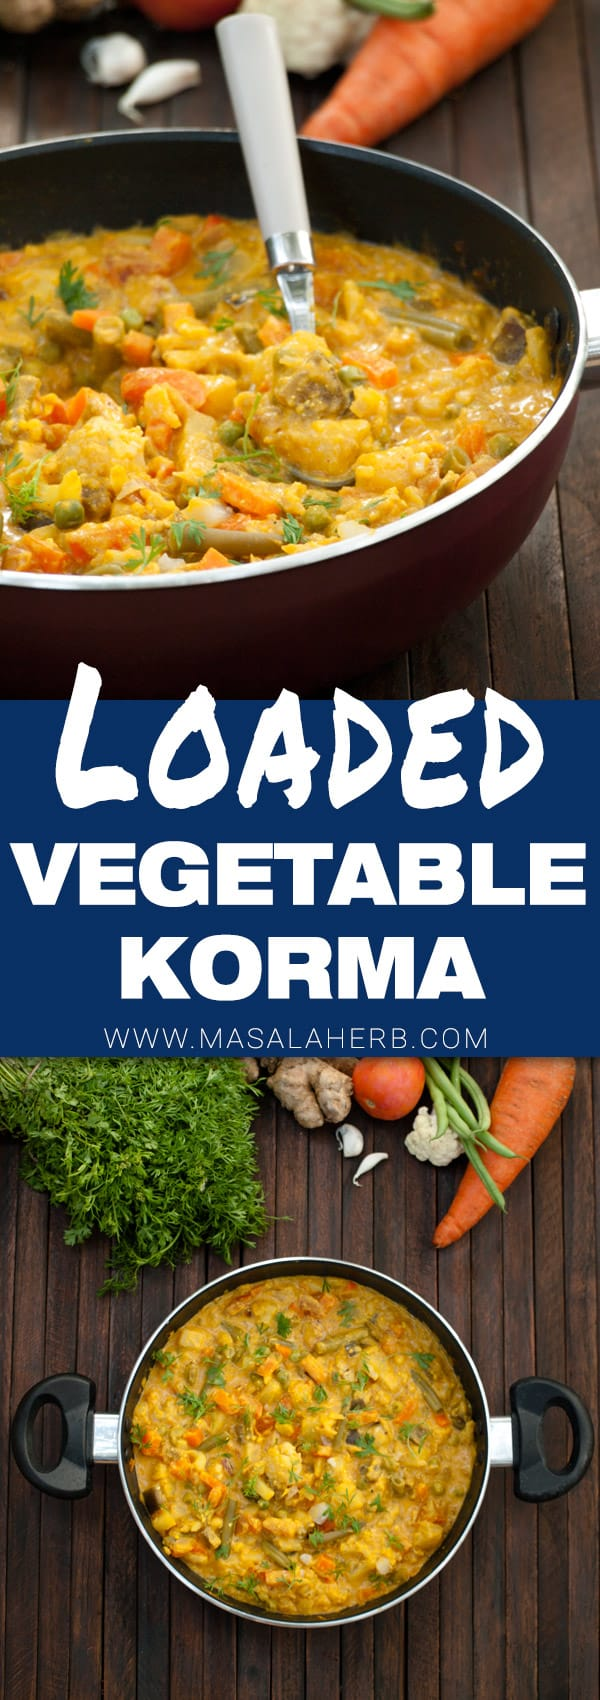 Vegetable Korma Recipe – Simple creamy mix veg kurma curry {without coconut} www.MasalaHerb.com #recipe #indianfood #curry